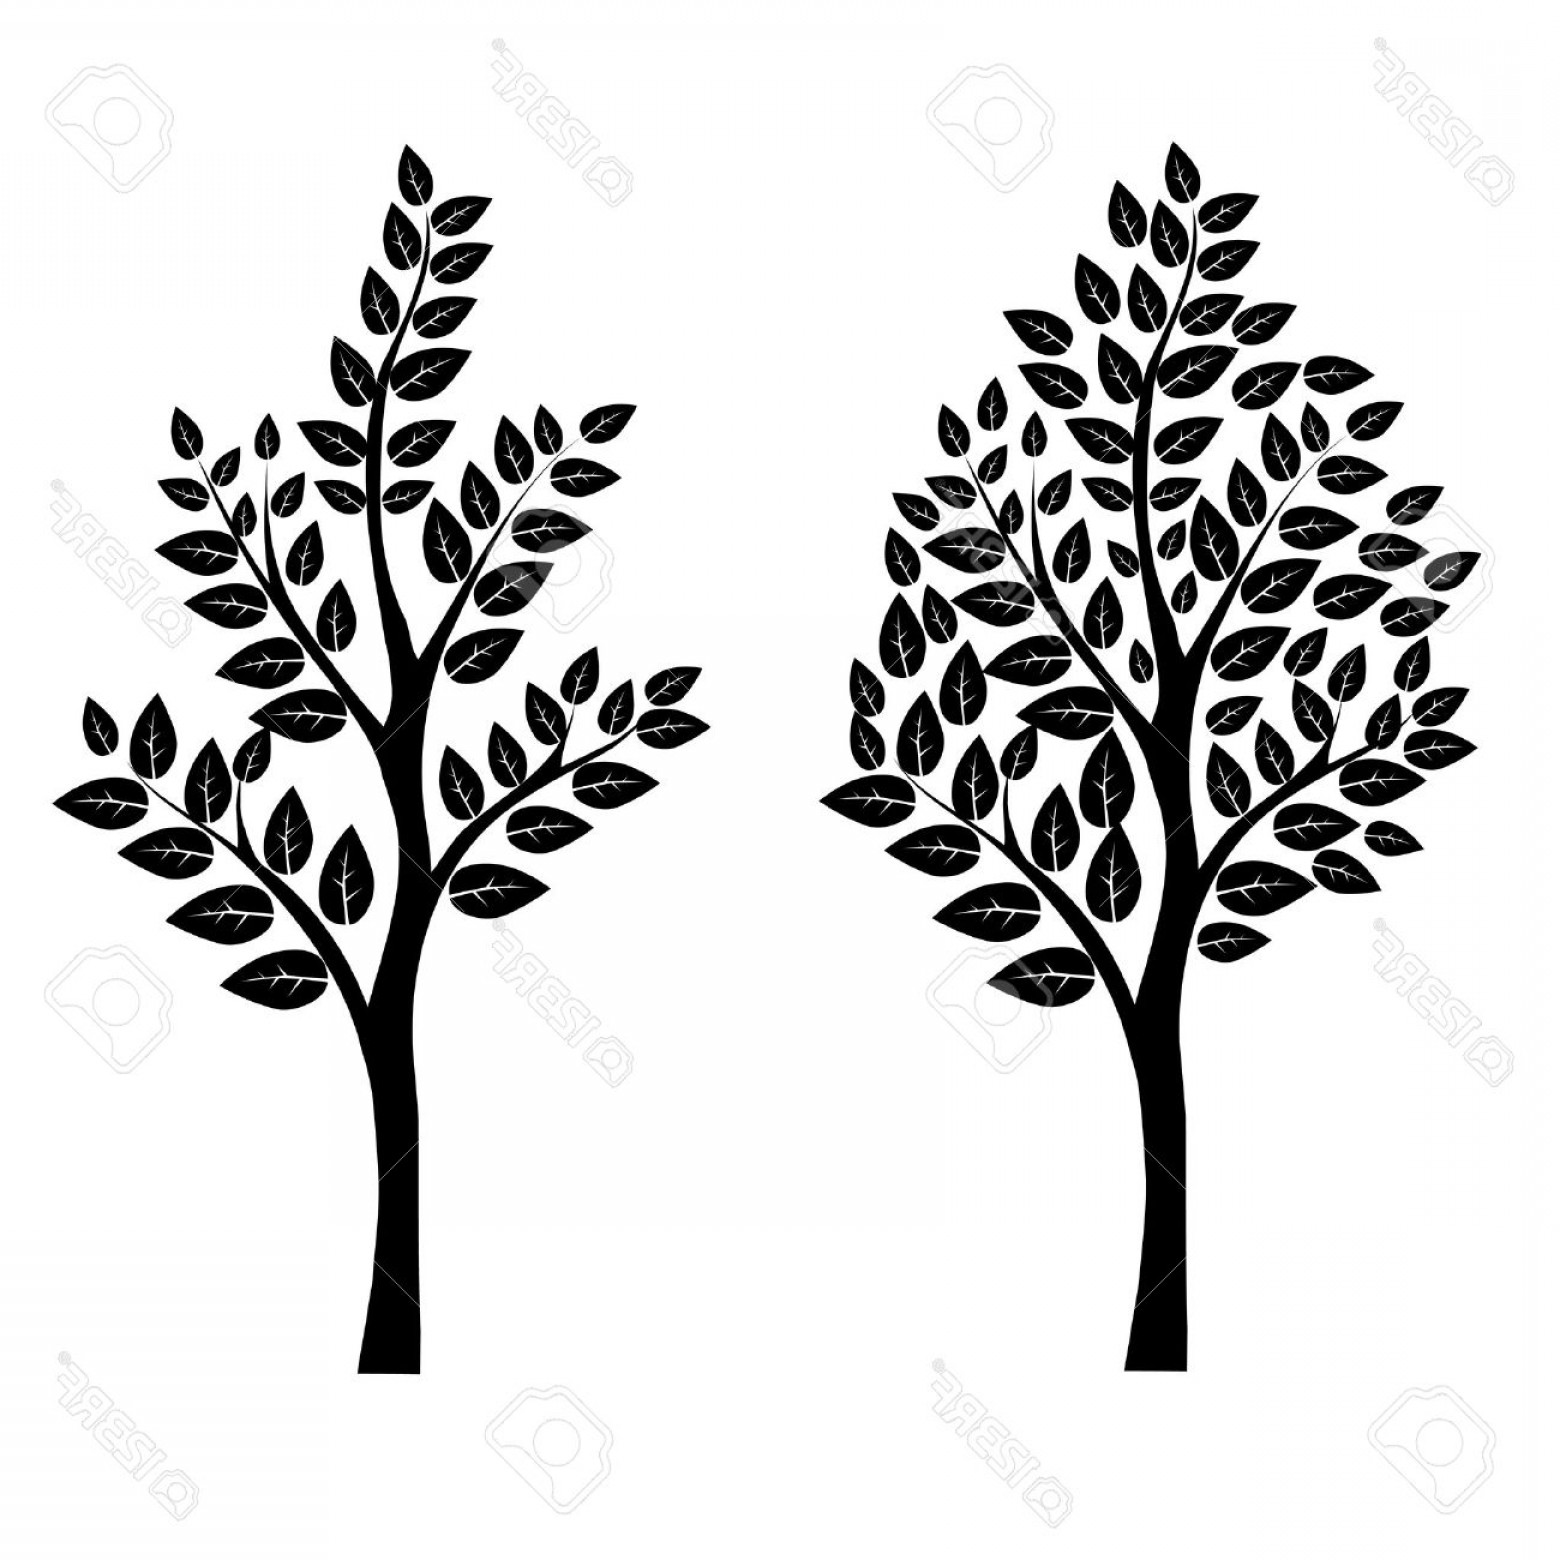 Free EPS Vector Art: Photoblack Tree Vector Art Eps